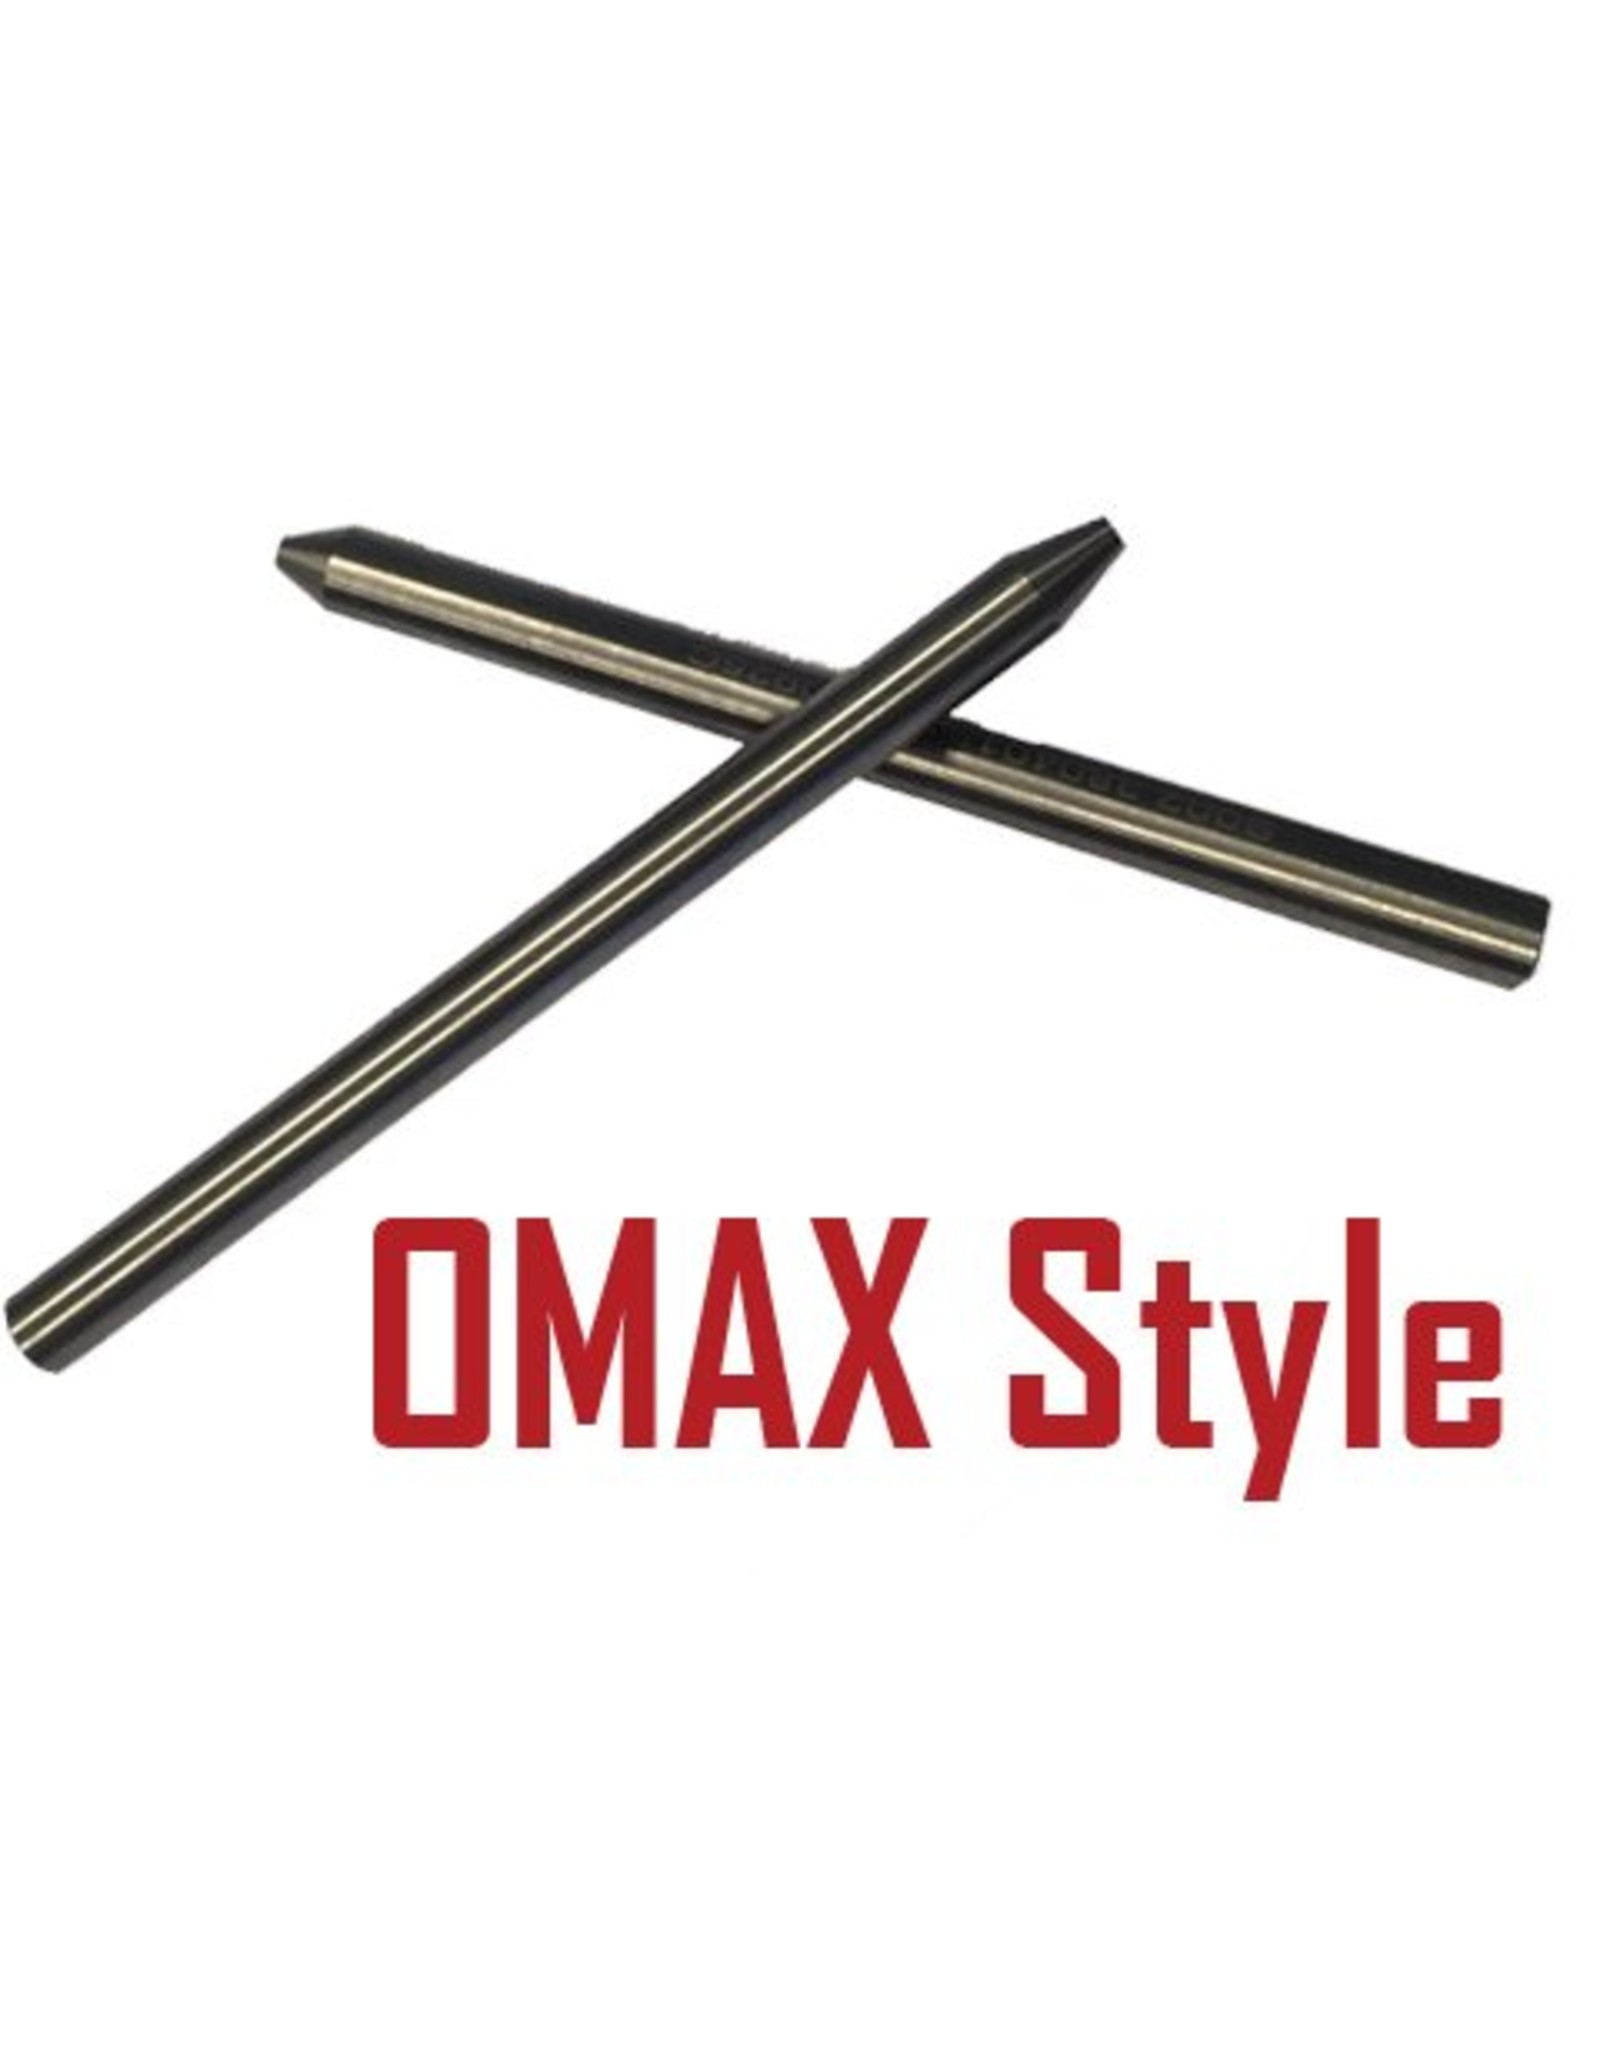 OMAX Style OMAX Style Focusing Nozzle